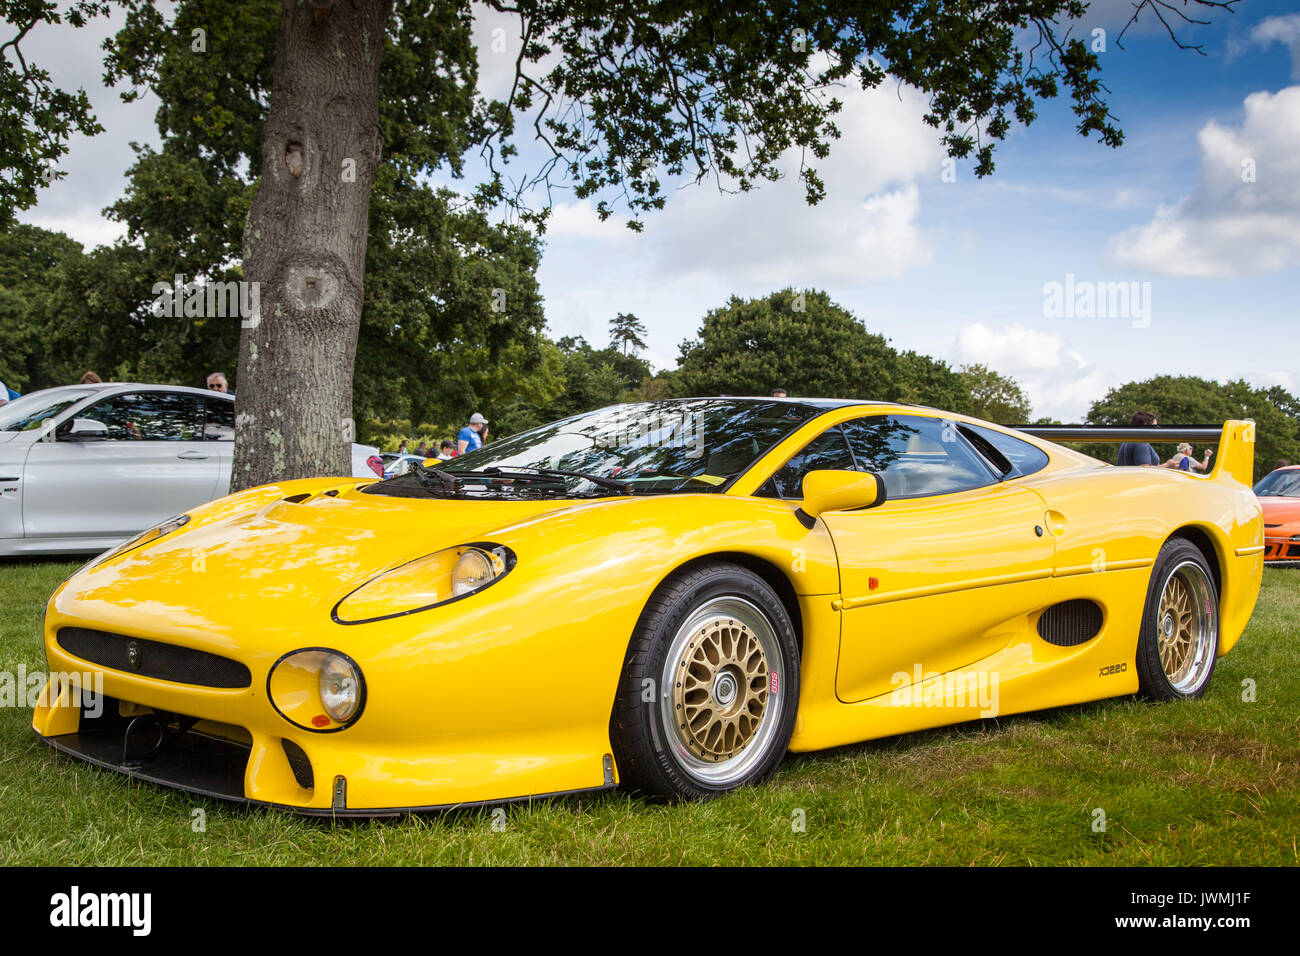 Jaguar Xj220 Stock Photos Amp Jaguar Xj220 Stock Images Alamy